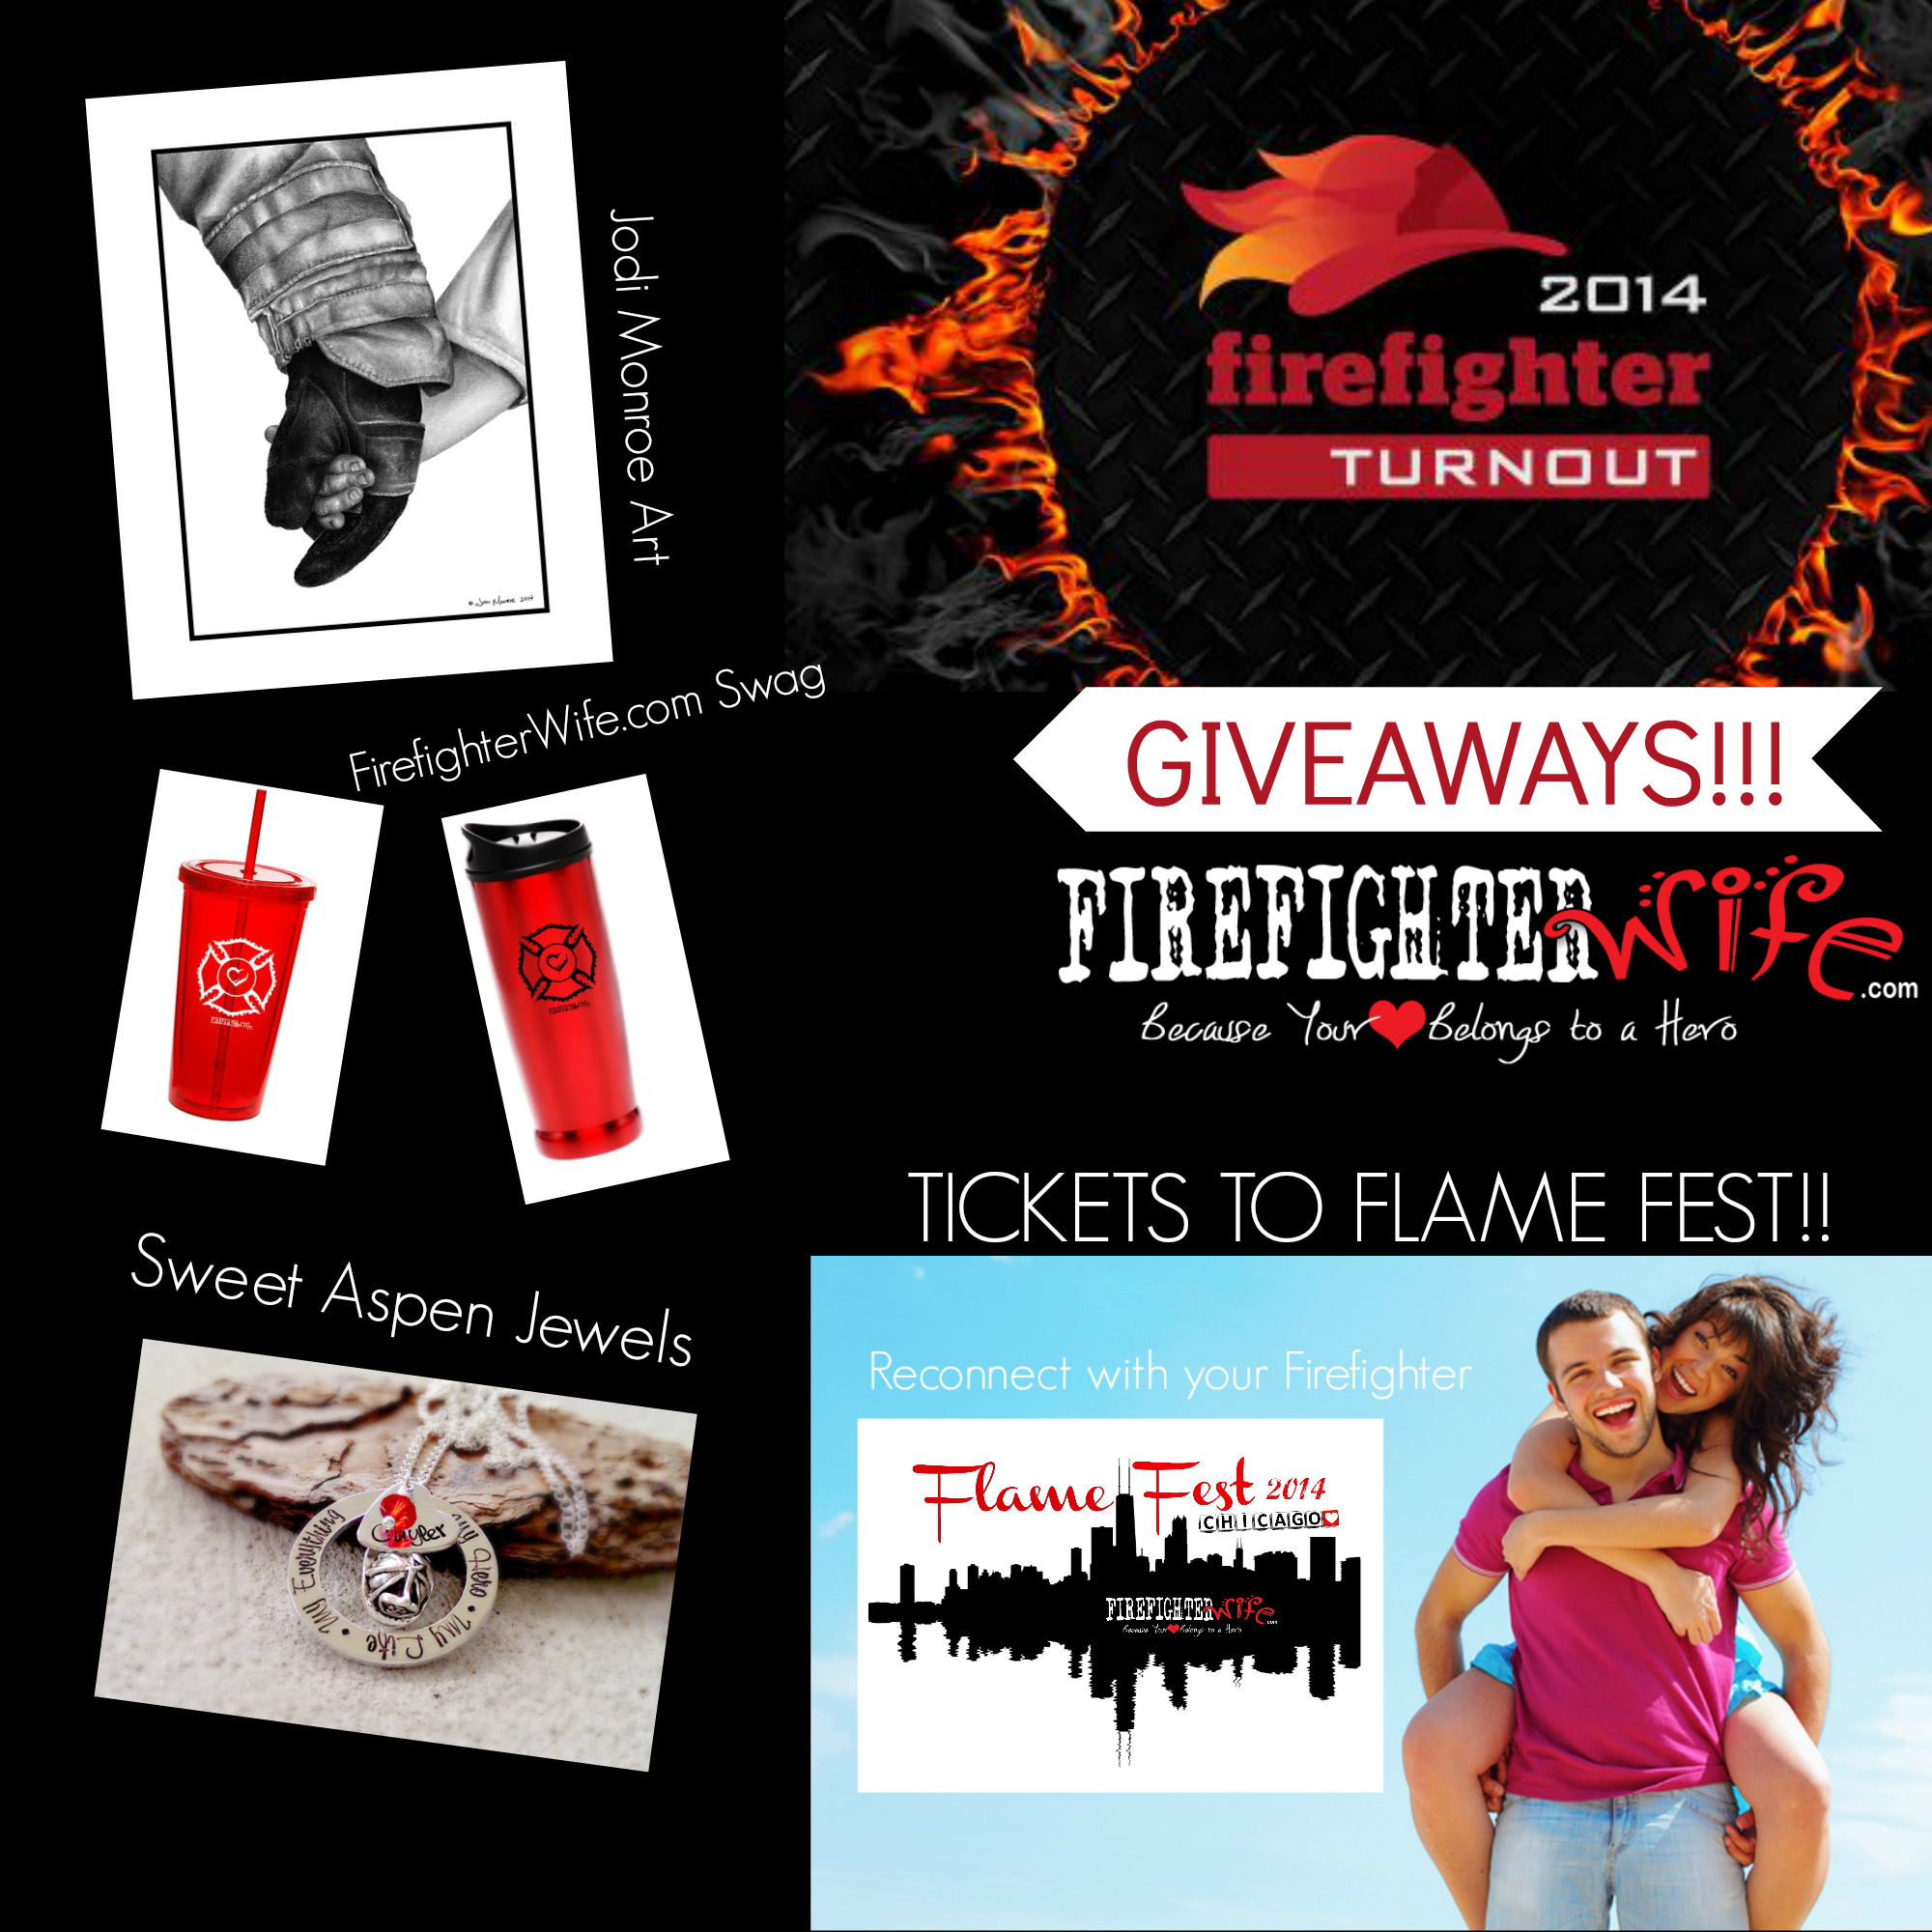 FFTO GIVEAWAYS